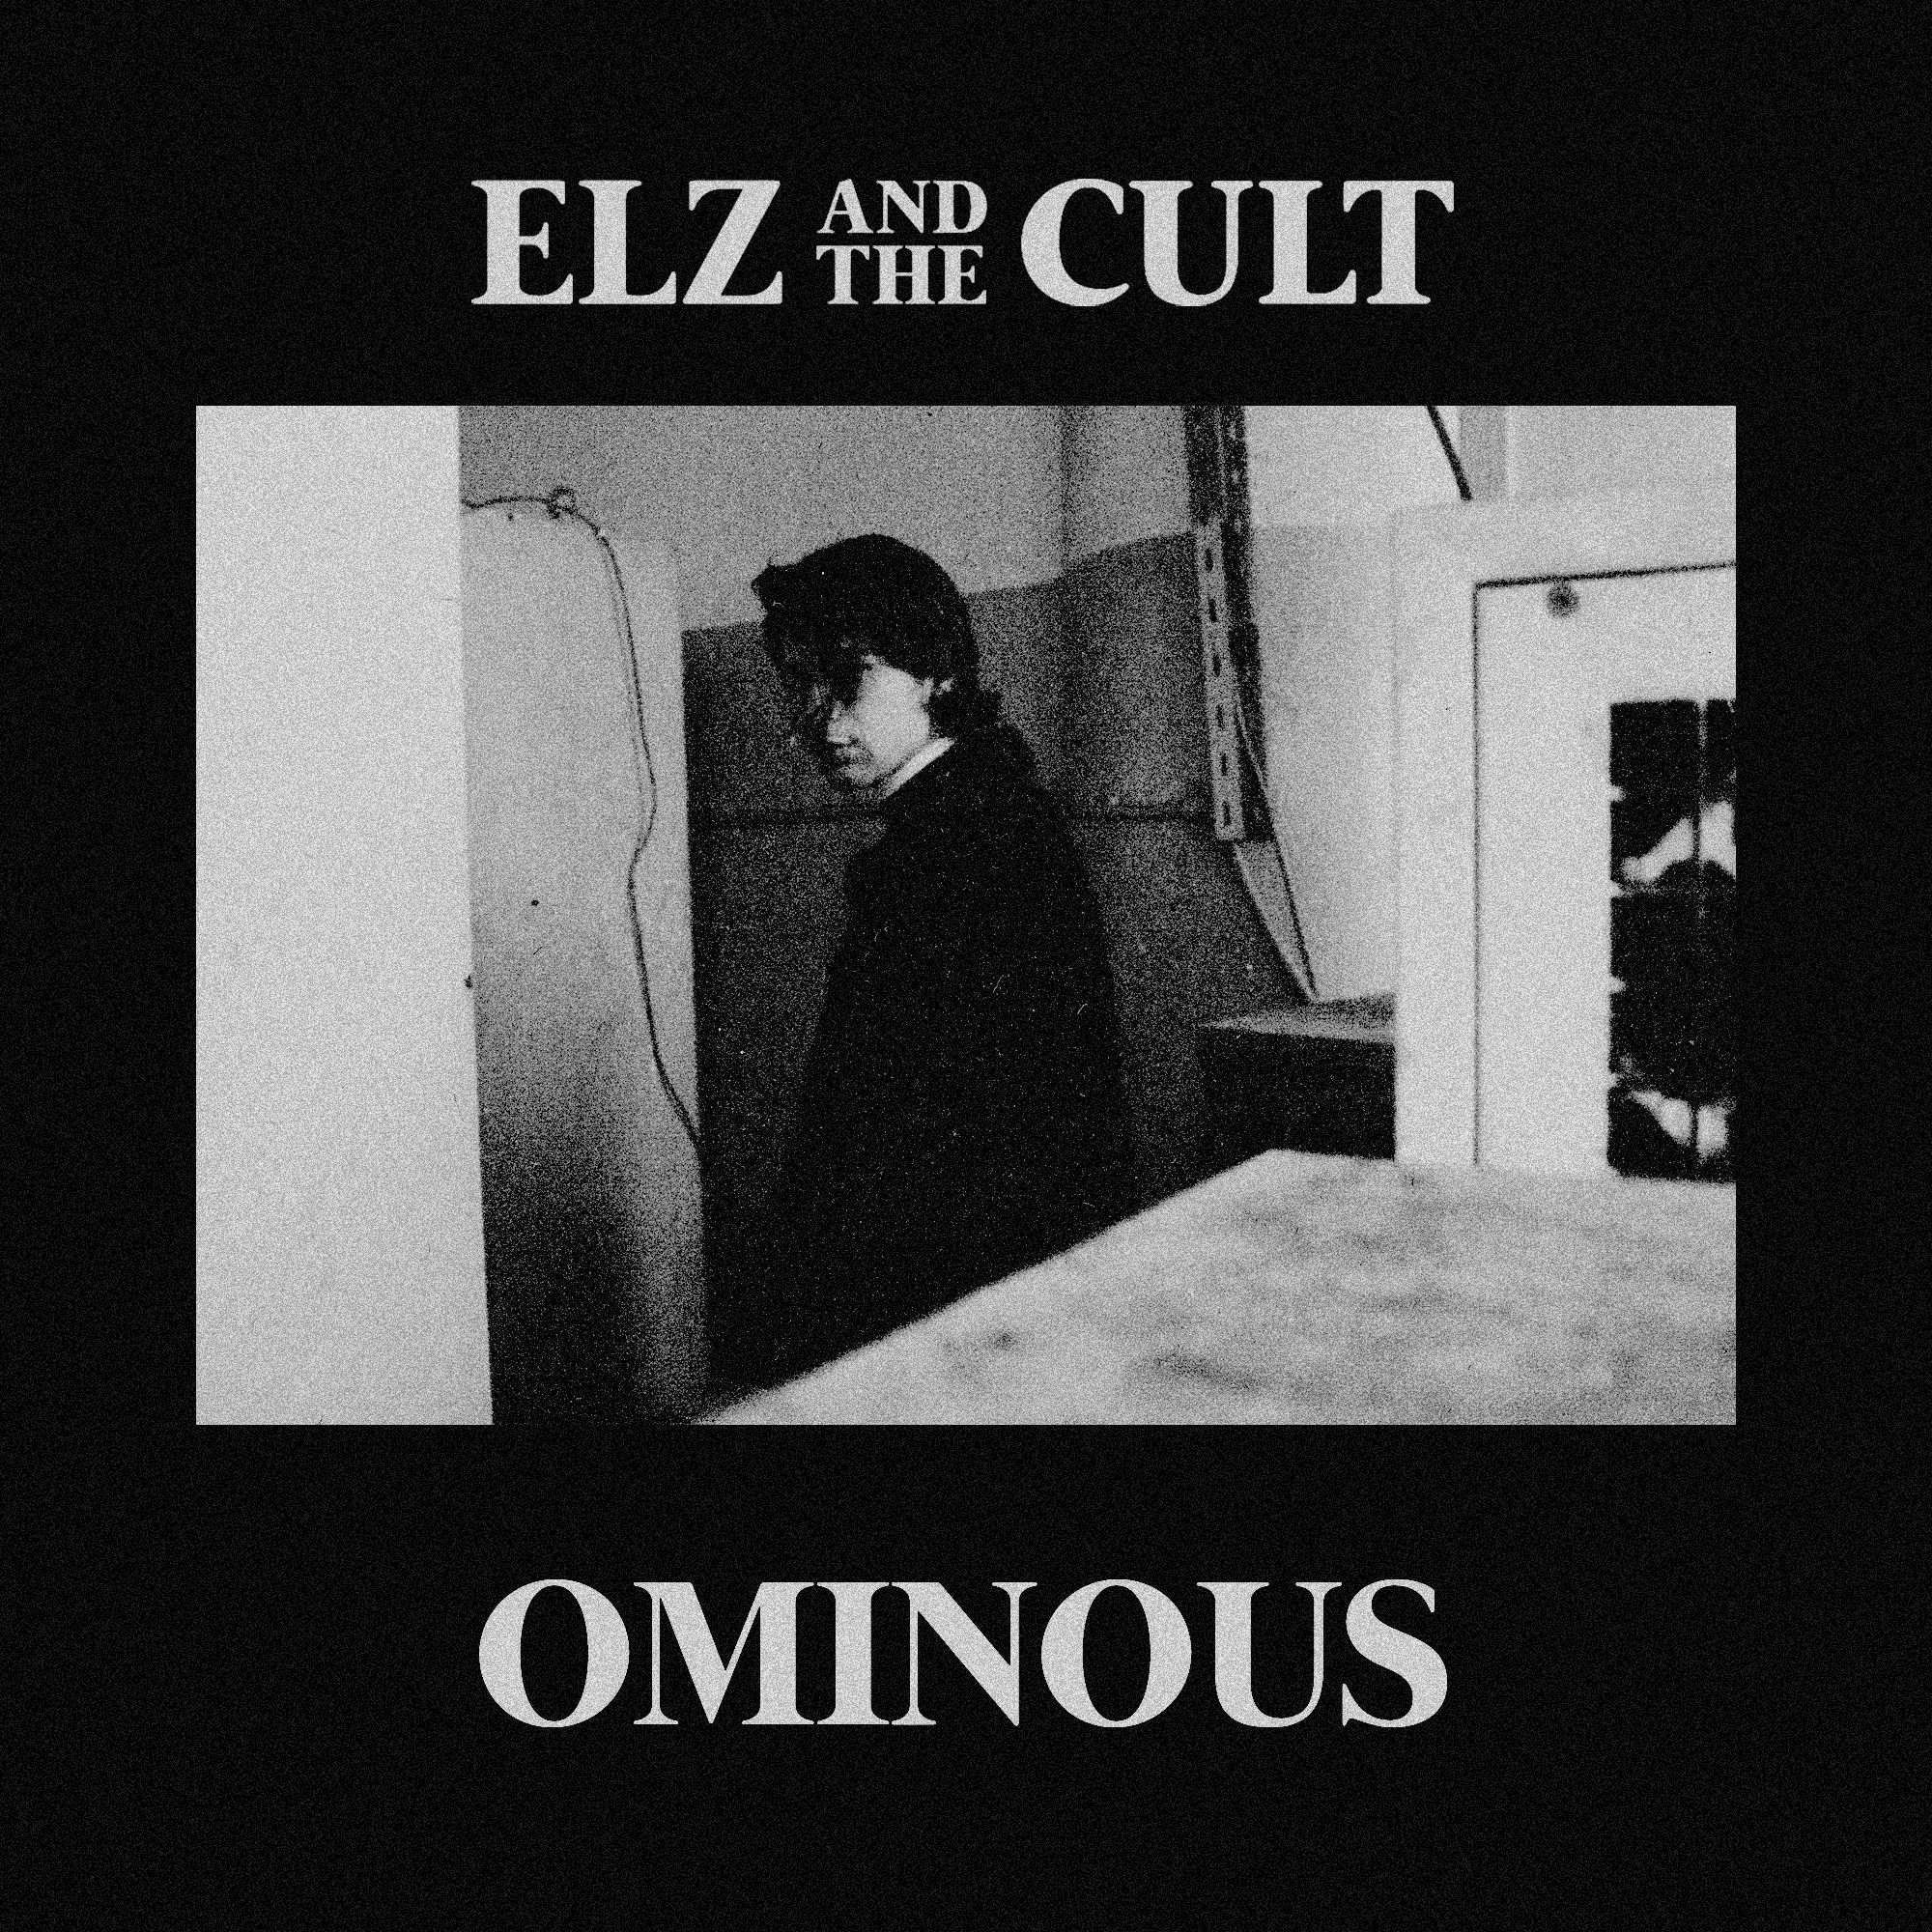 ELZ AND THE CULT – OMINOUS